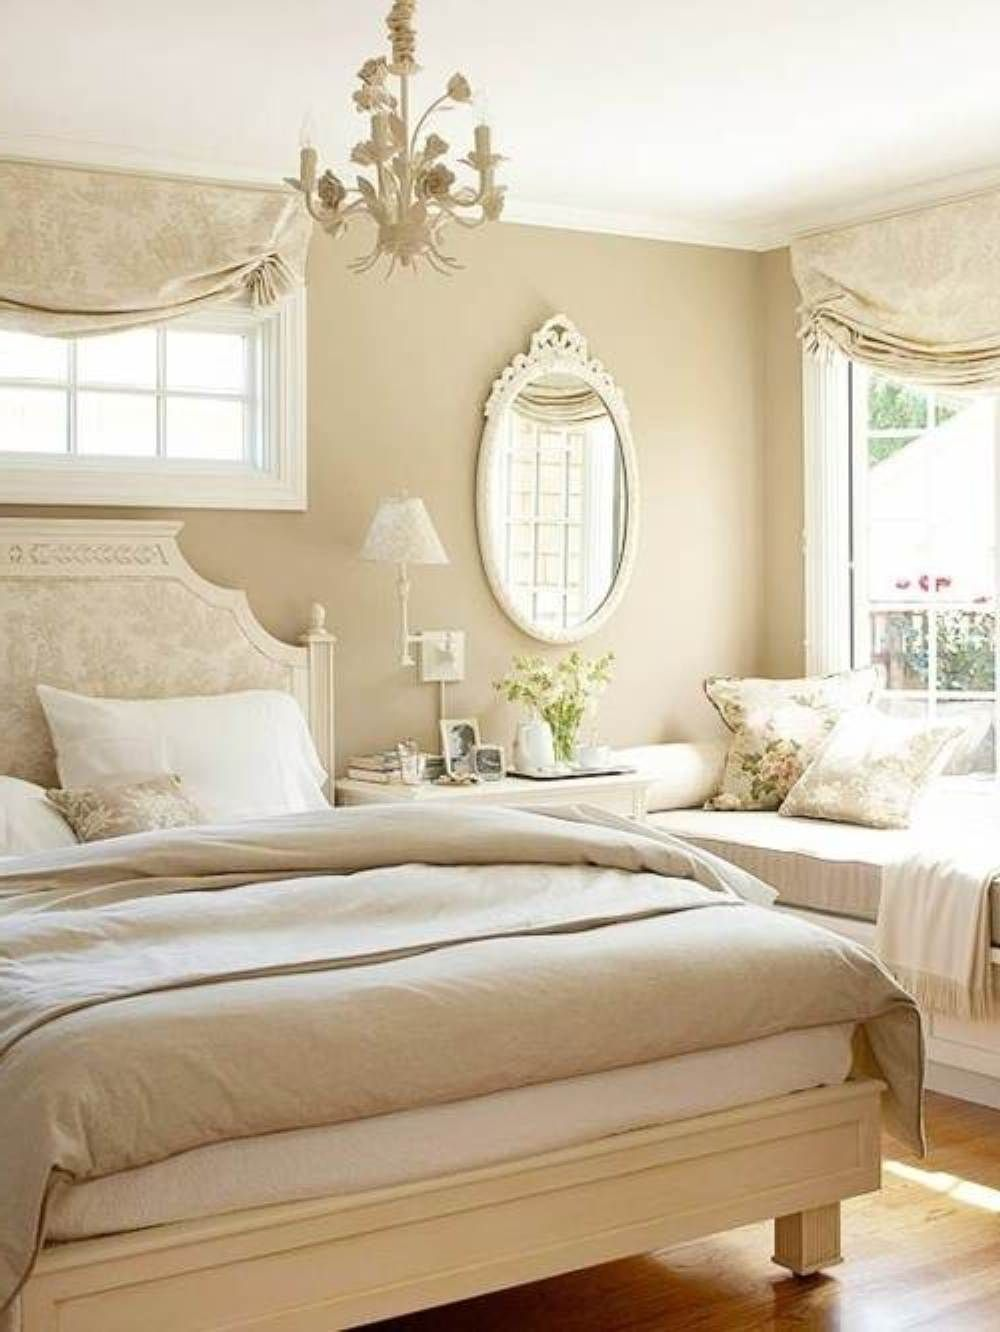 Romantic Bedroom Color Ideas: Romantic Bedroom Designed In Neutral Colors. This One Has